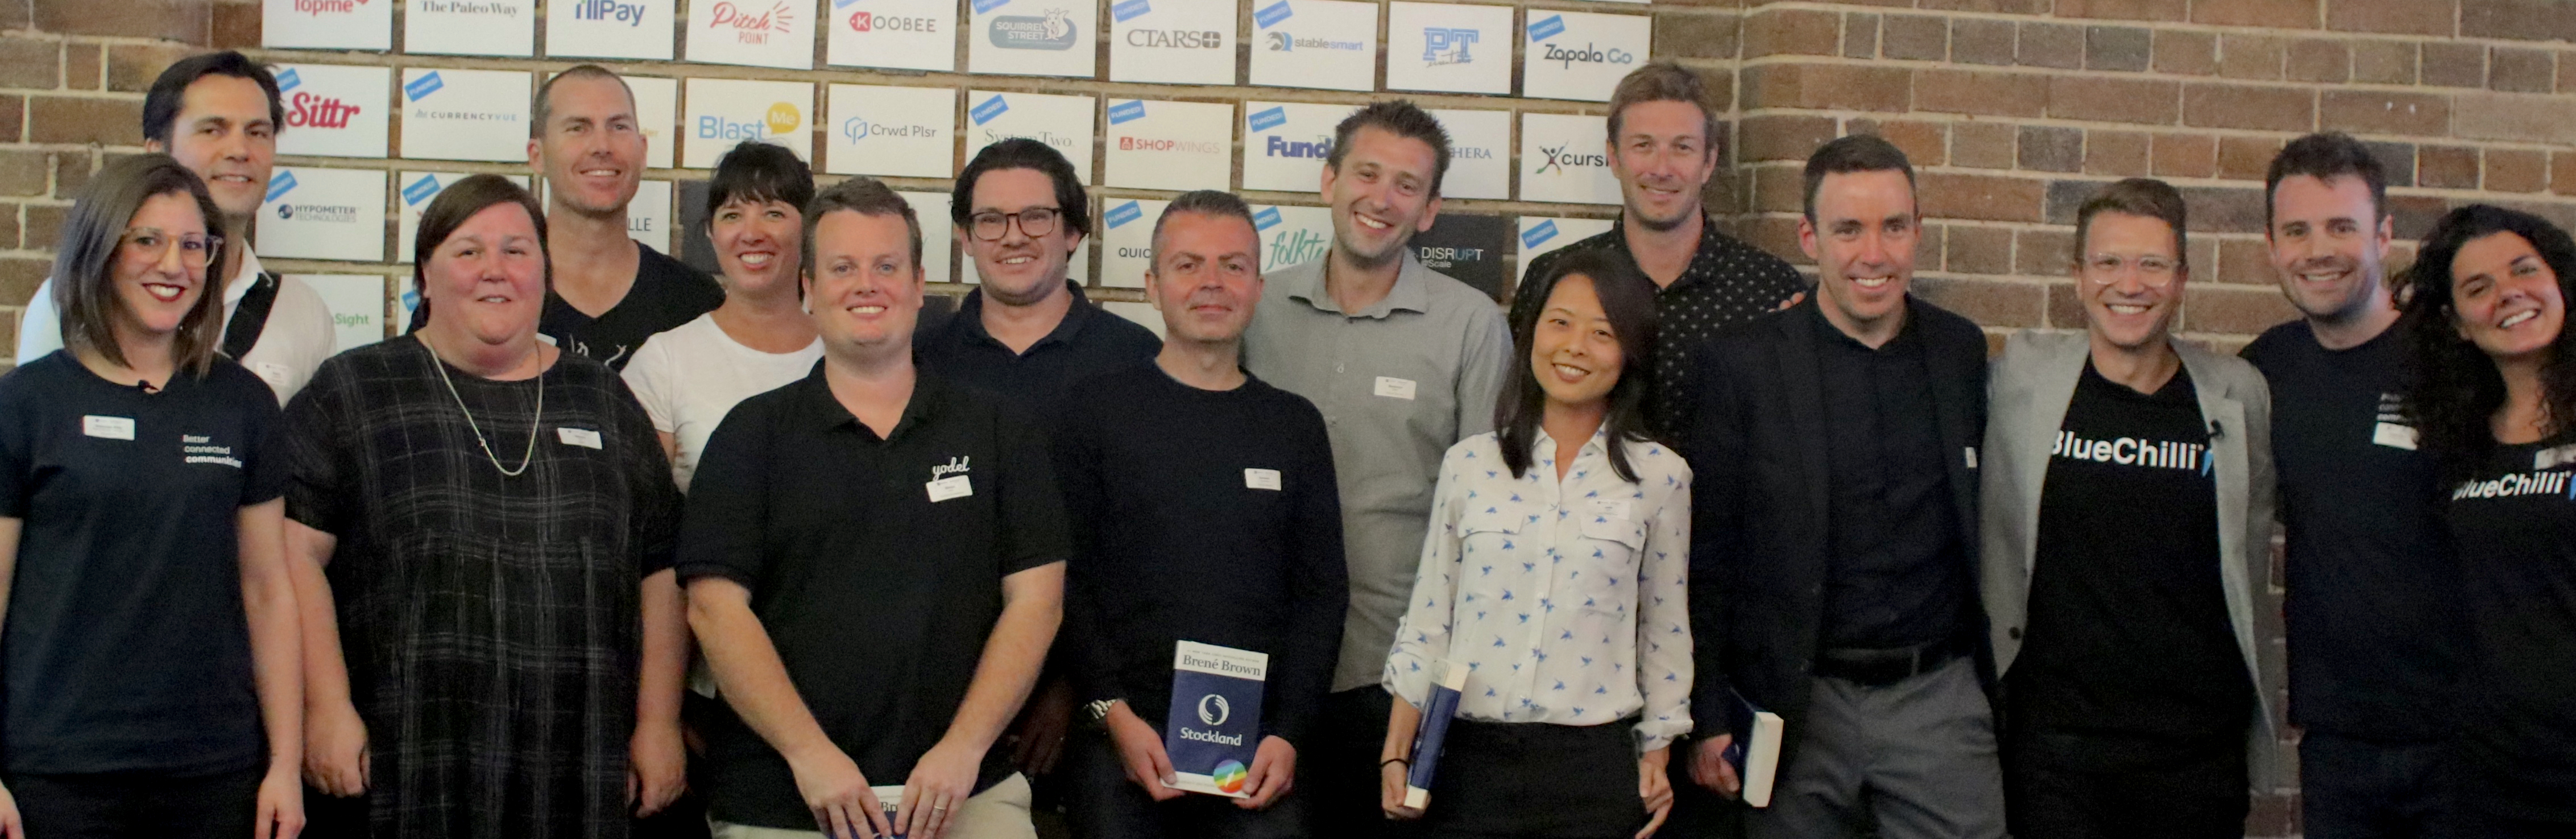 Stockland Accelerator participants - more founders attended event online.